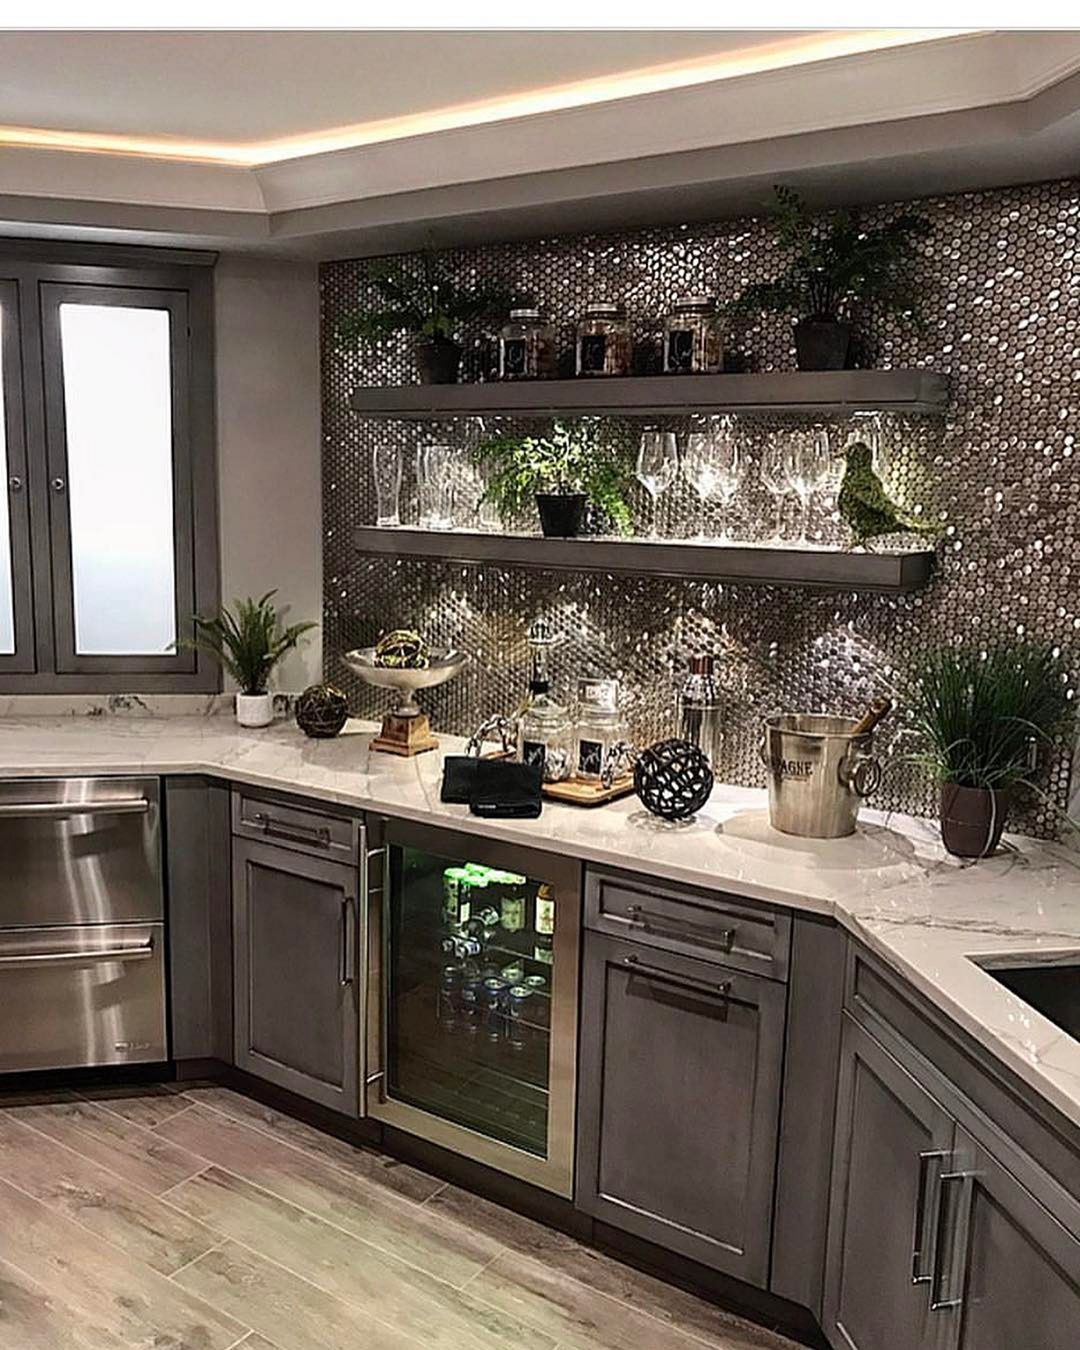 30 Fabulous Home Bar Design And Decor Ideas That Can You Try Home Decor Home Bar Design Interior Design Kitchen